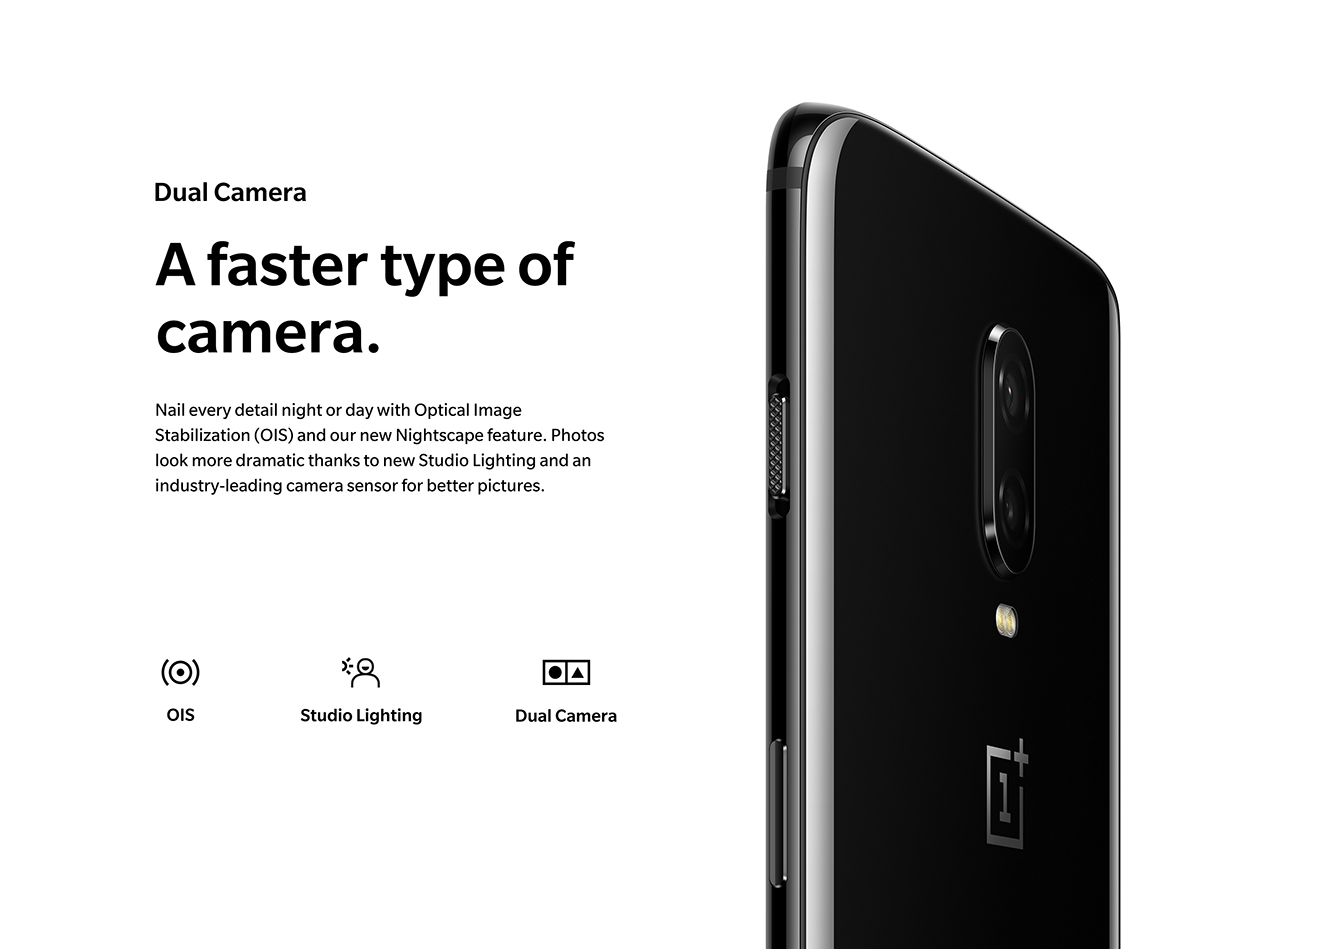 A faster type of camera